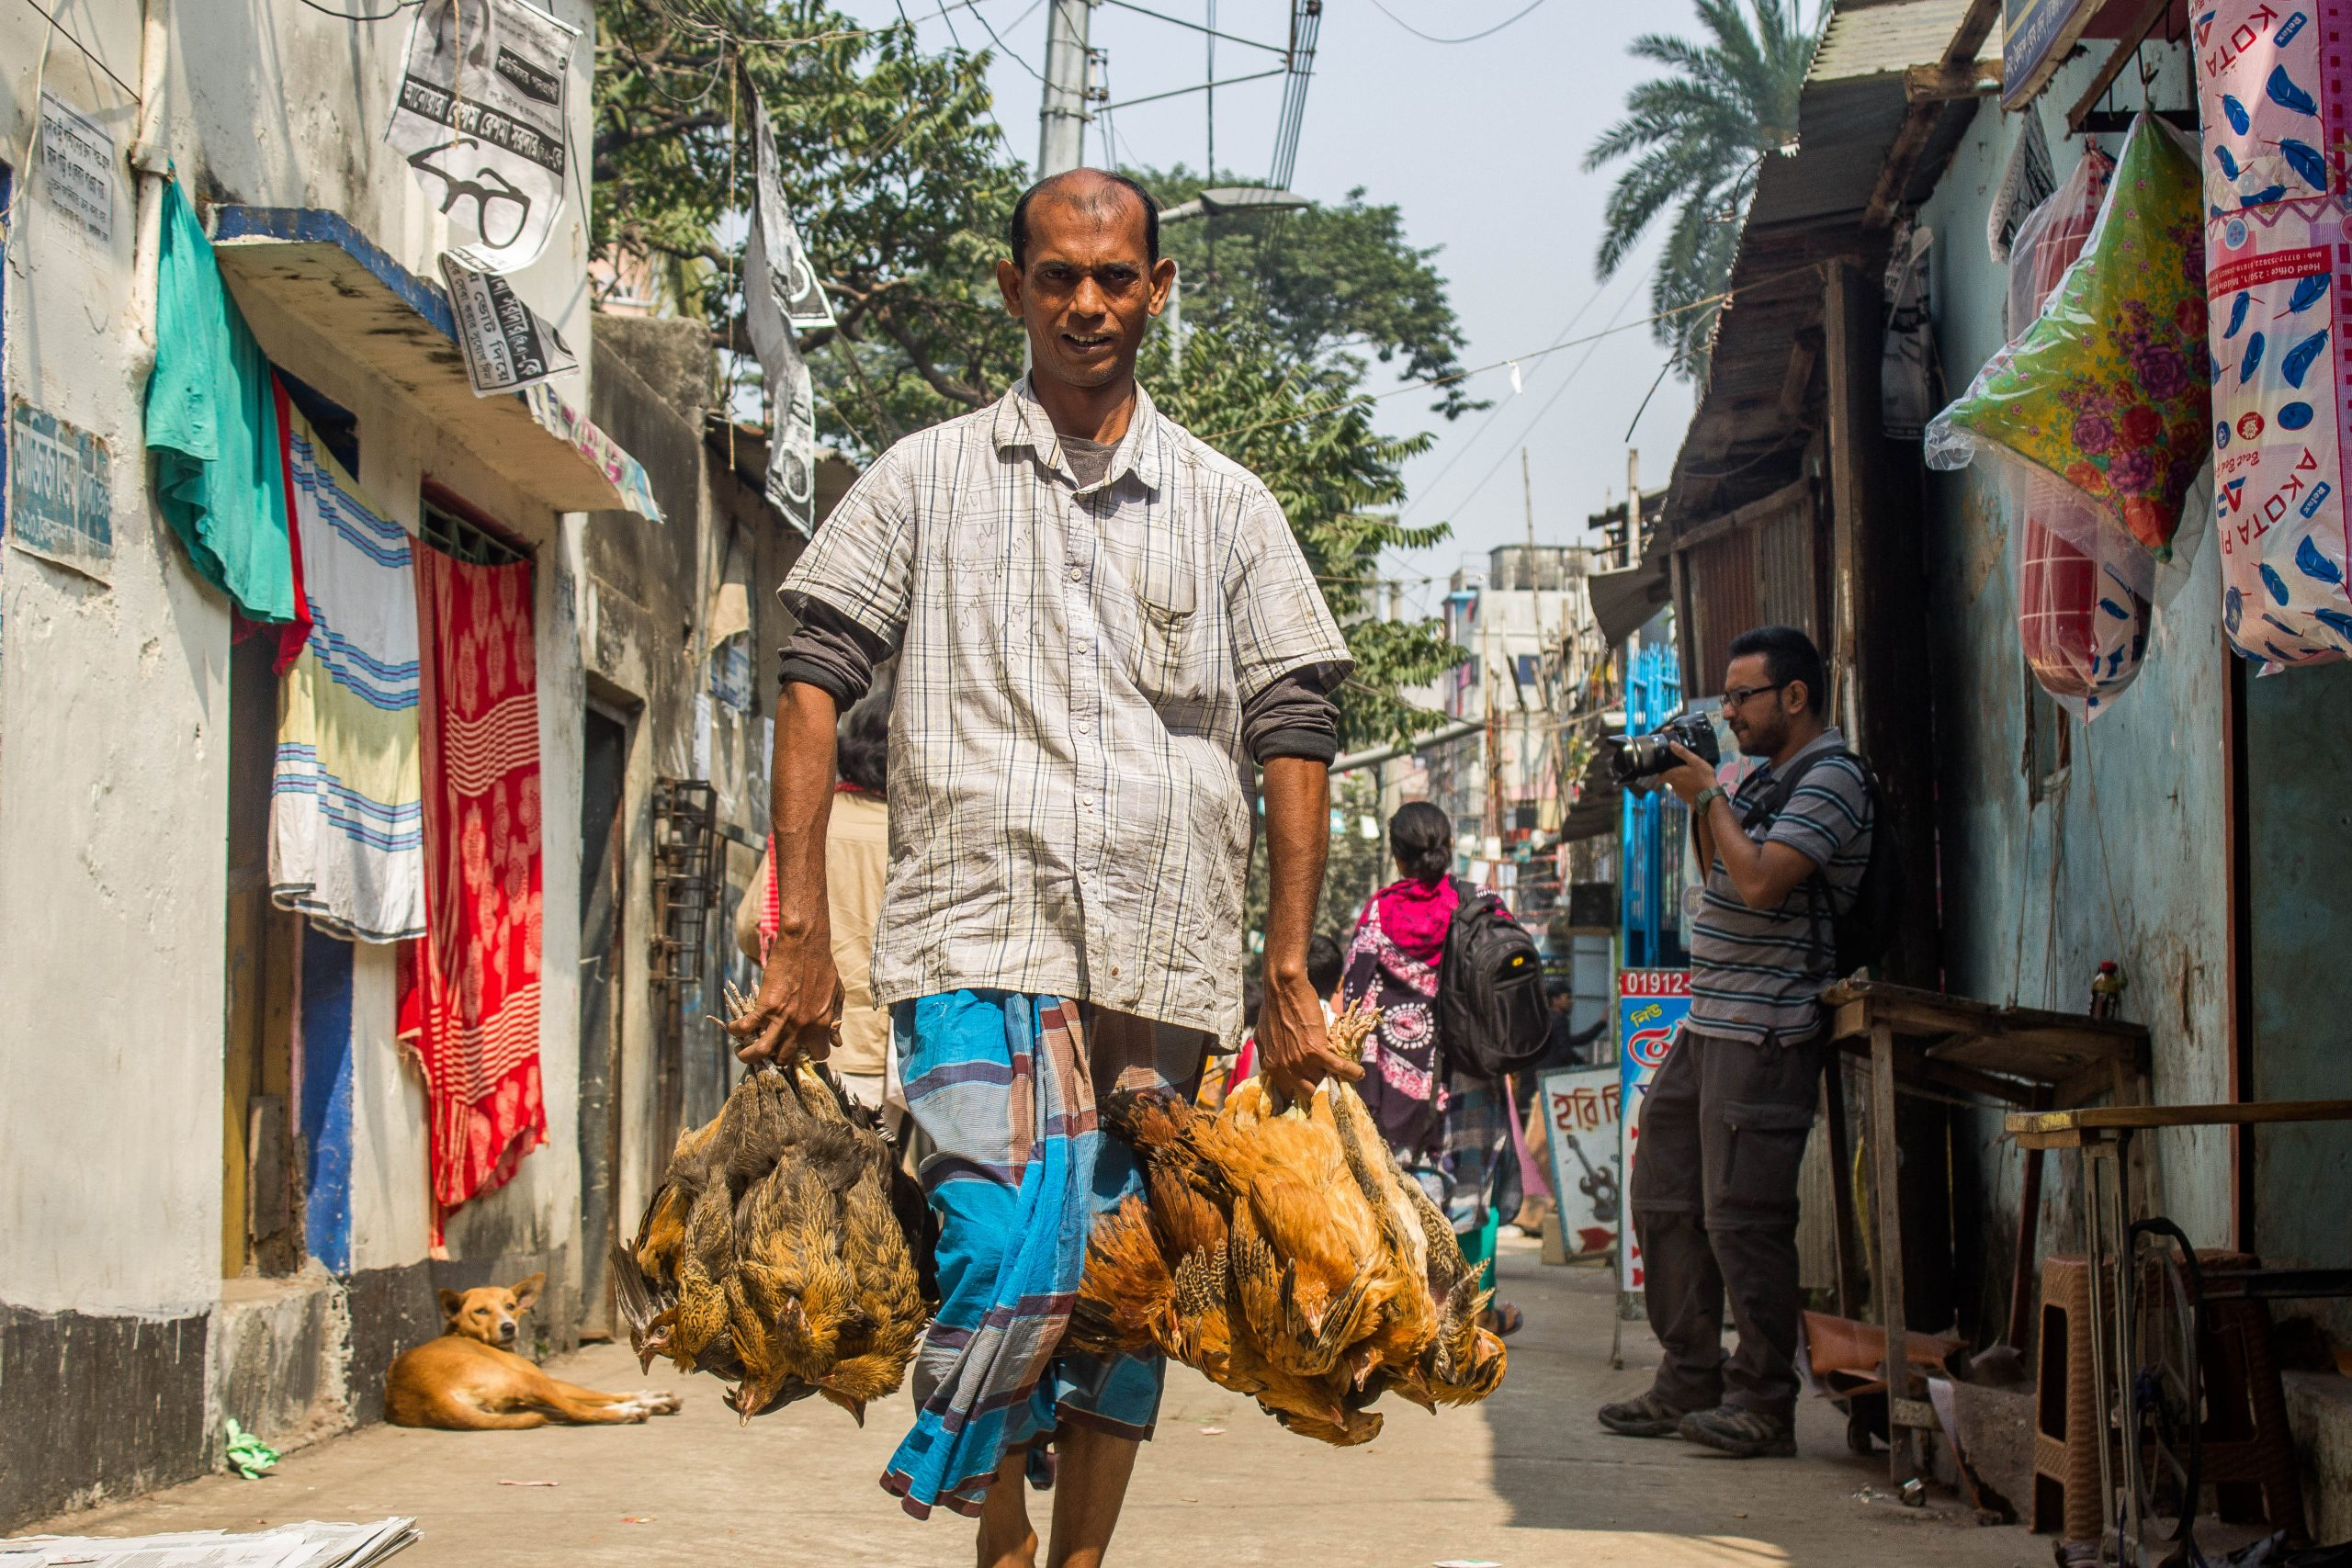 Photo: Bouquet of Chickens. Image of man holding chickens